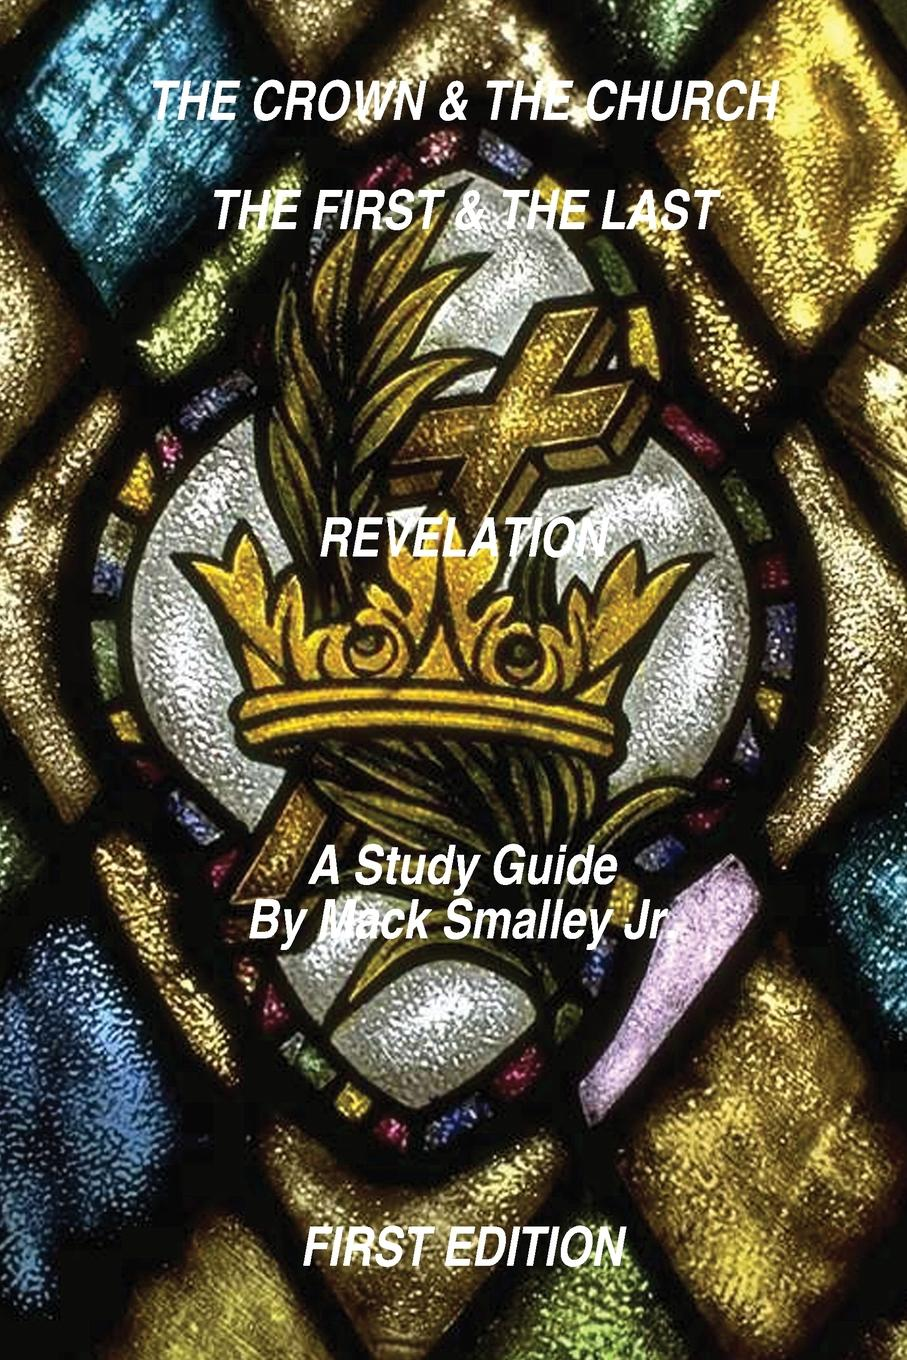 Mack Smalley Jr. THE CROWN . THE CHURCH THE FIRST . THE LAST REVELATION. A Study Guide mack smalley jr the crown the church the first the last revelation a study guide